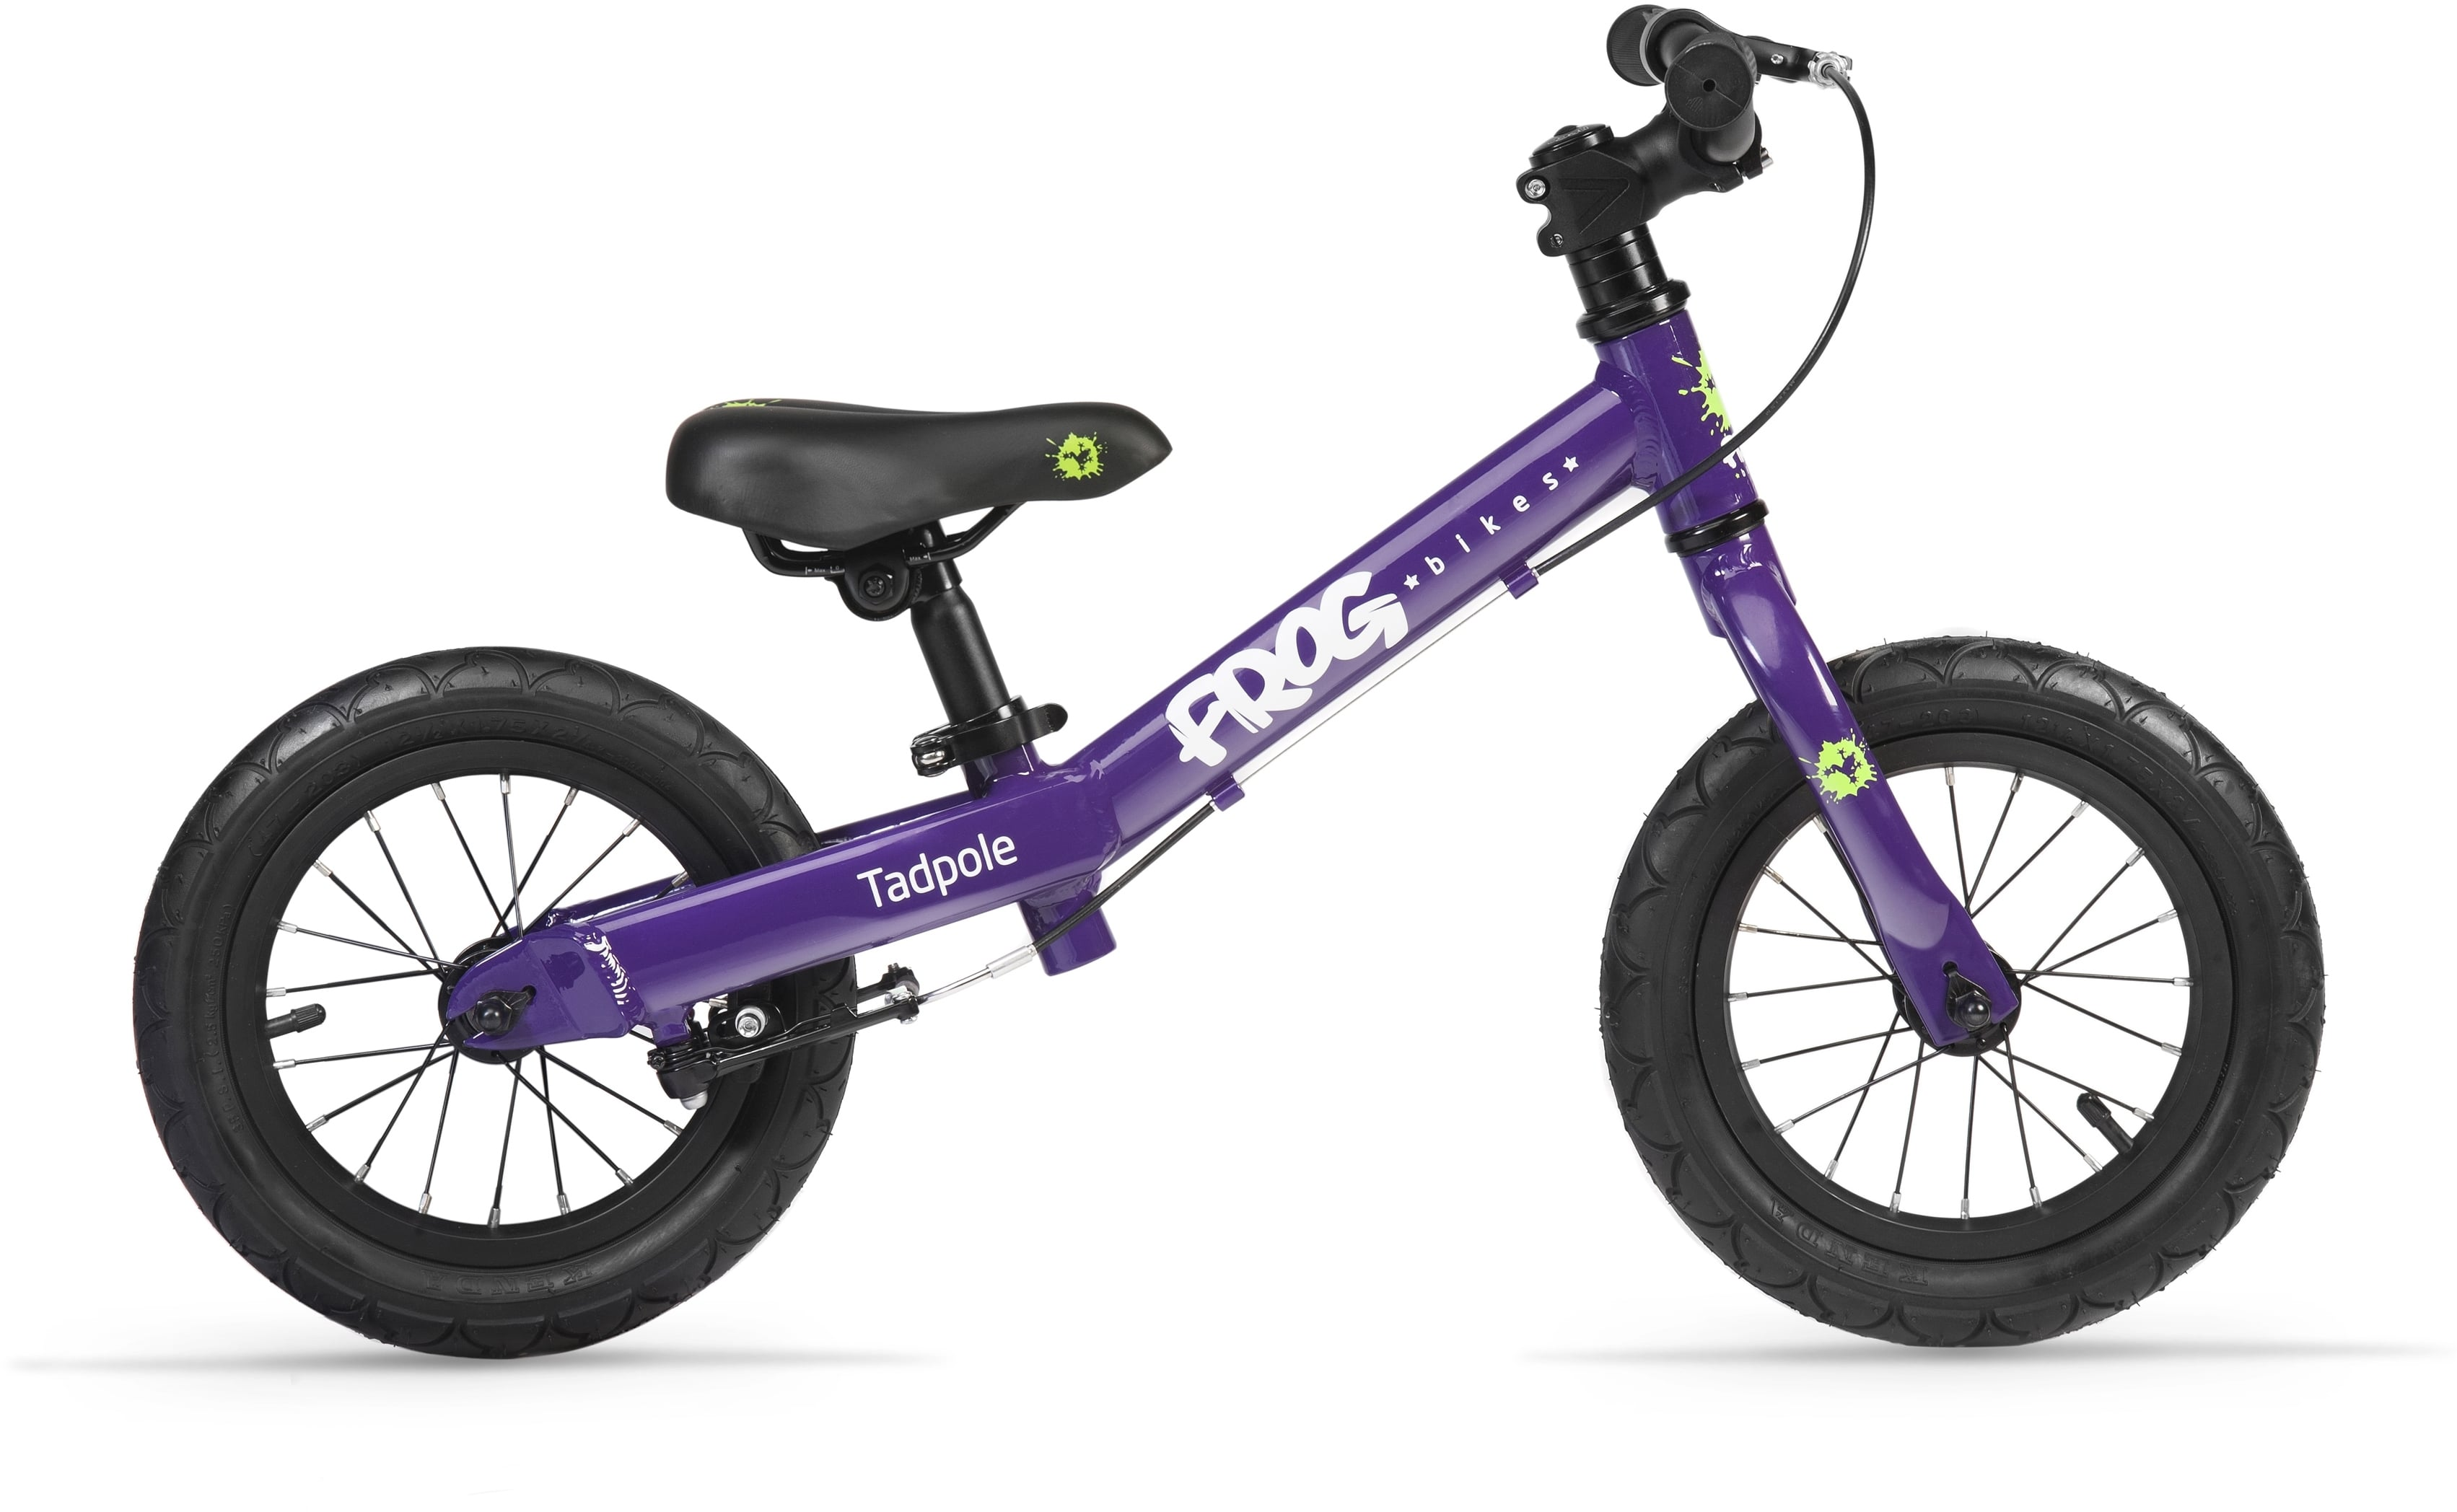 Londongreencycles frog bike tadpole purple